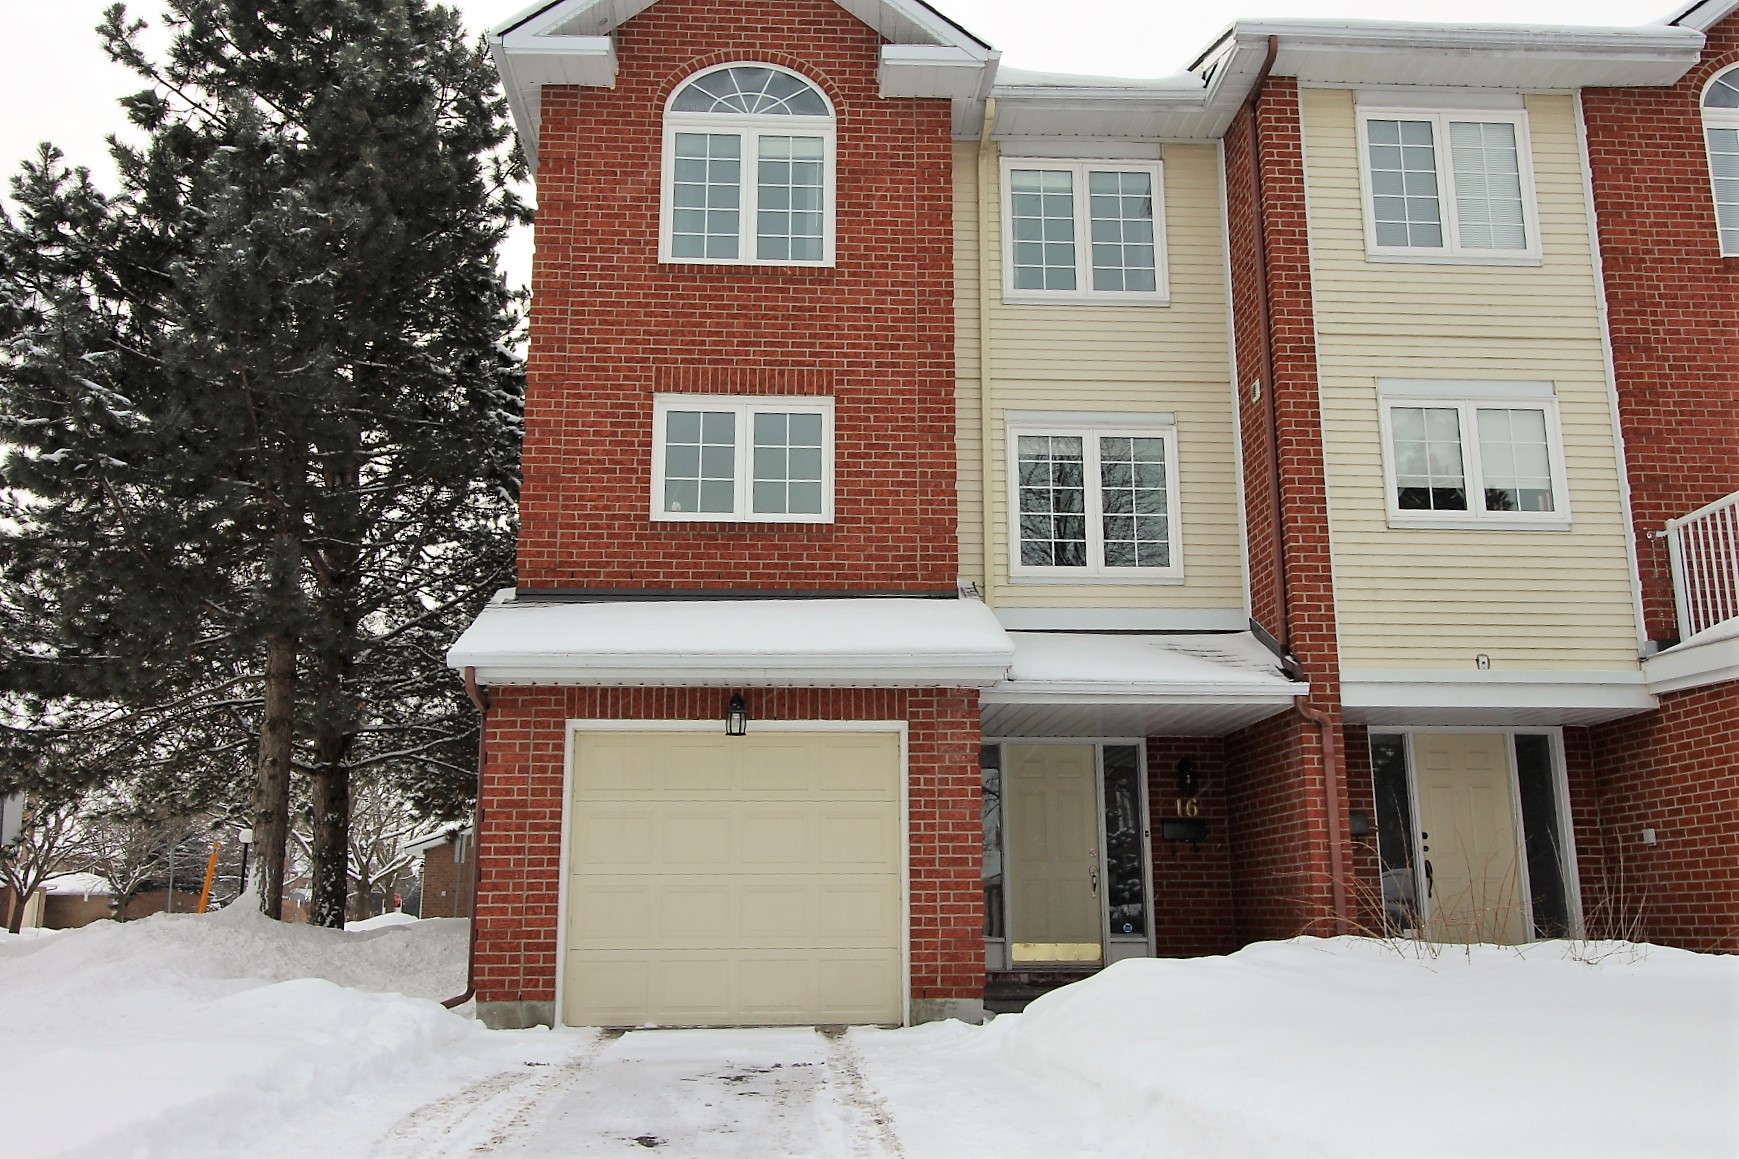 16 Wrenwood Cres - Stunning End Unit Condo Townhome in sought after Centrepointe!